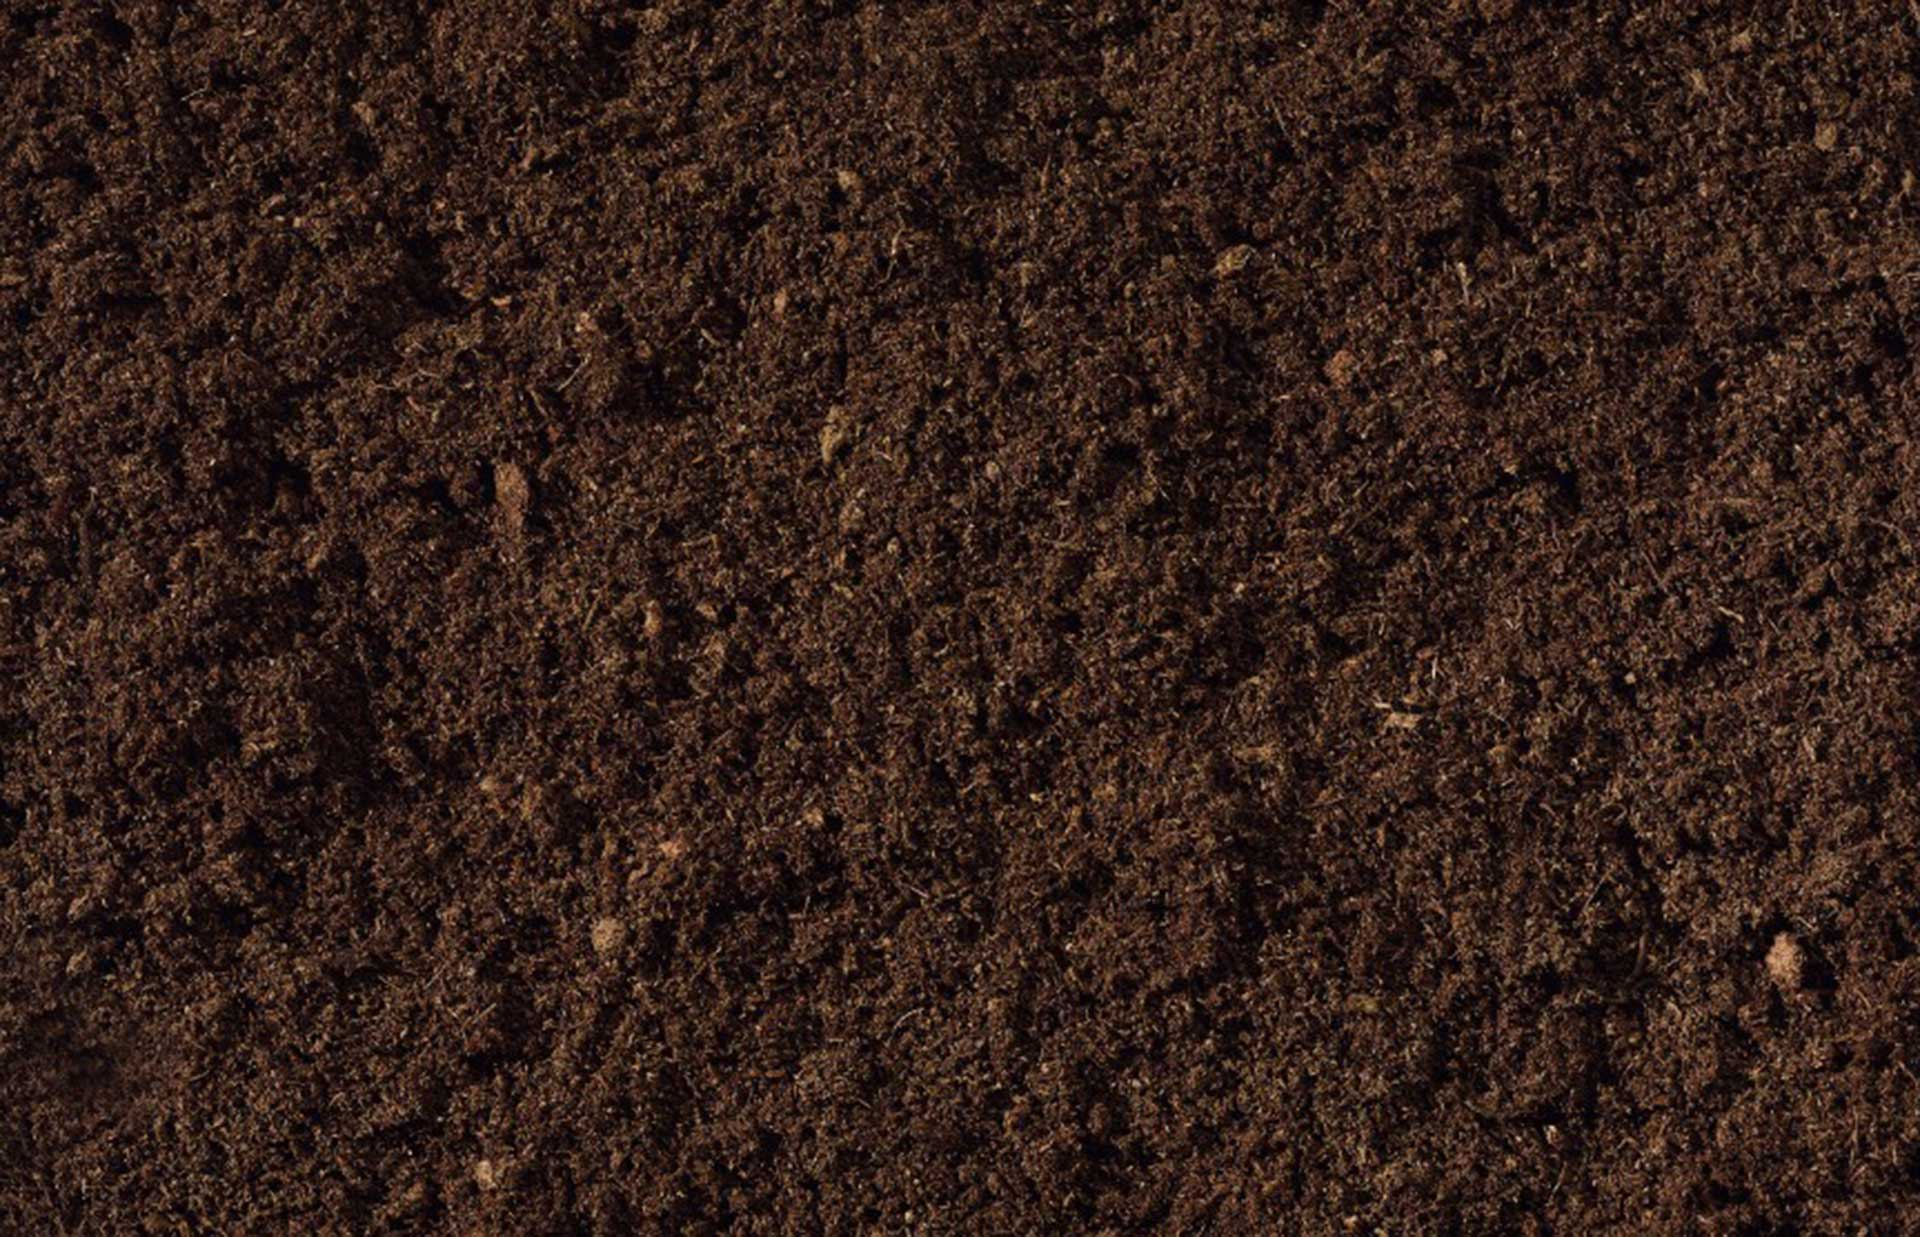 picture of compost material